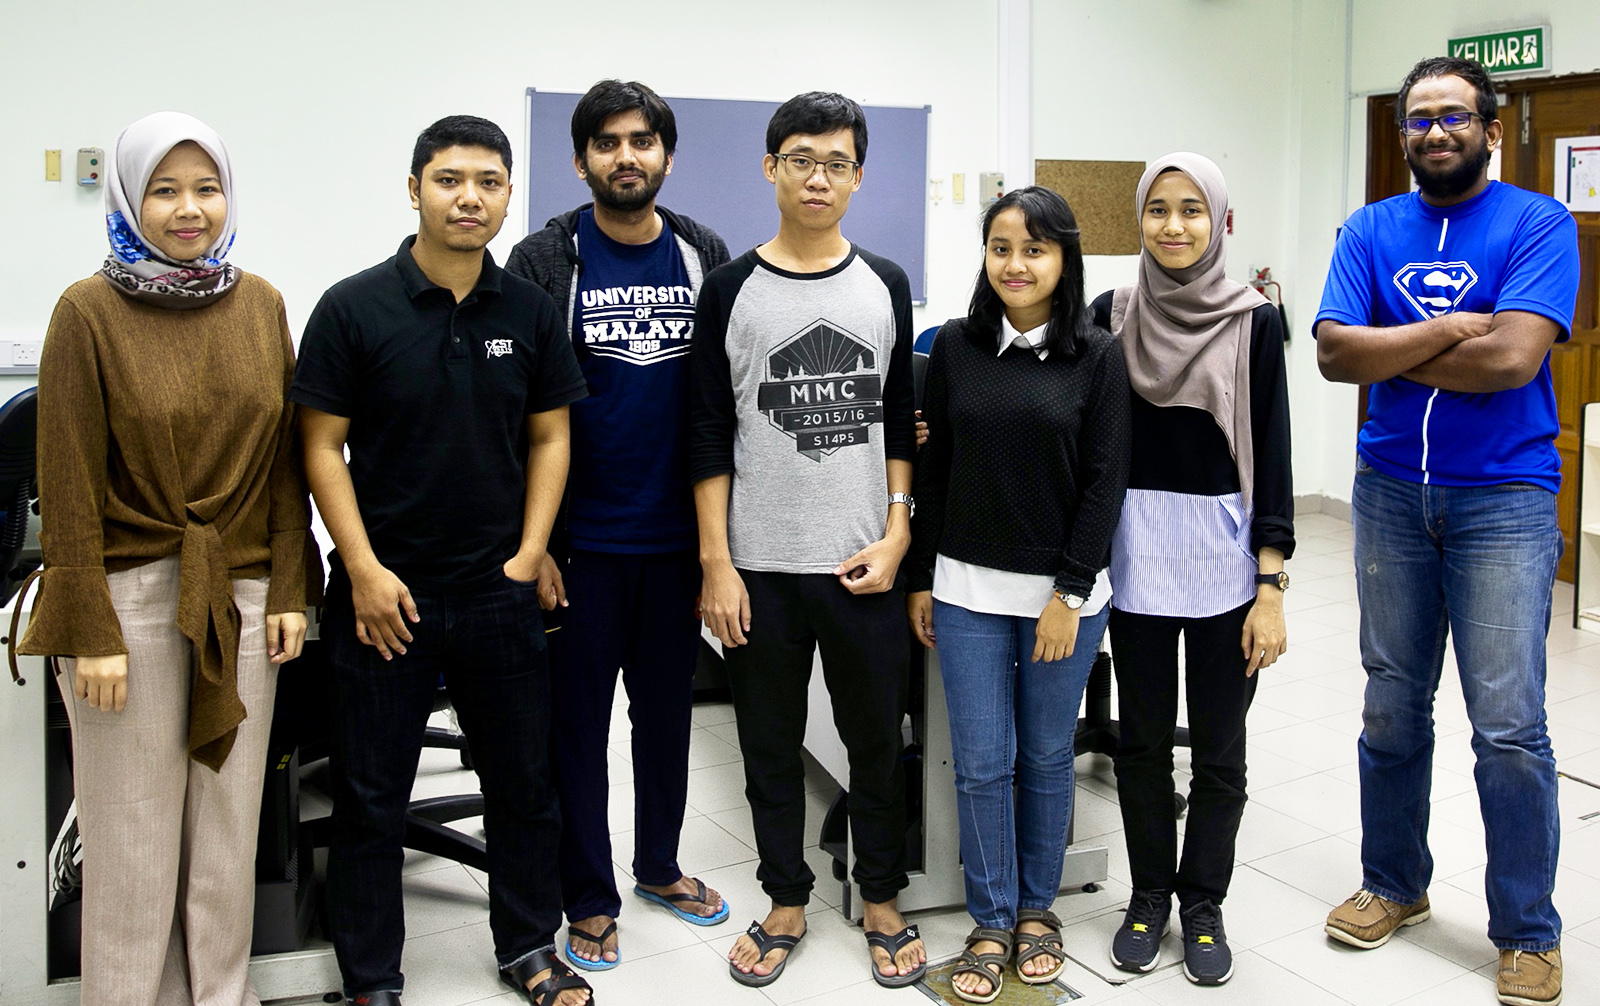 UM Students Emerged Victorious at the Global Datathon Championship